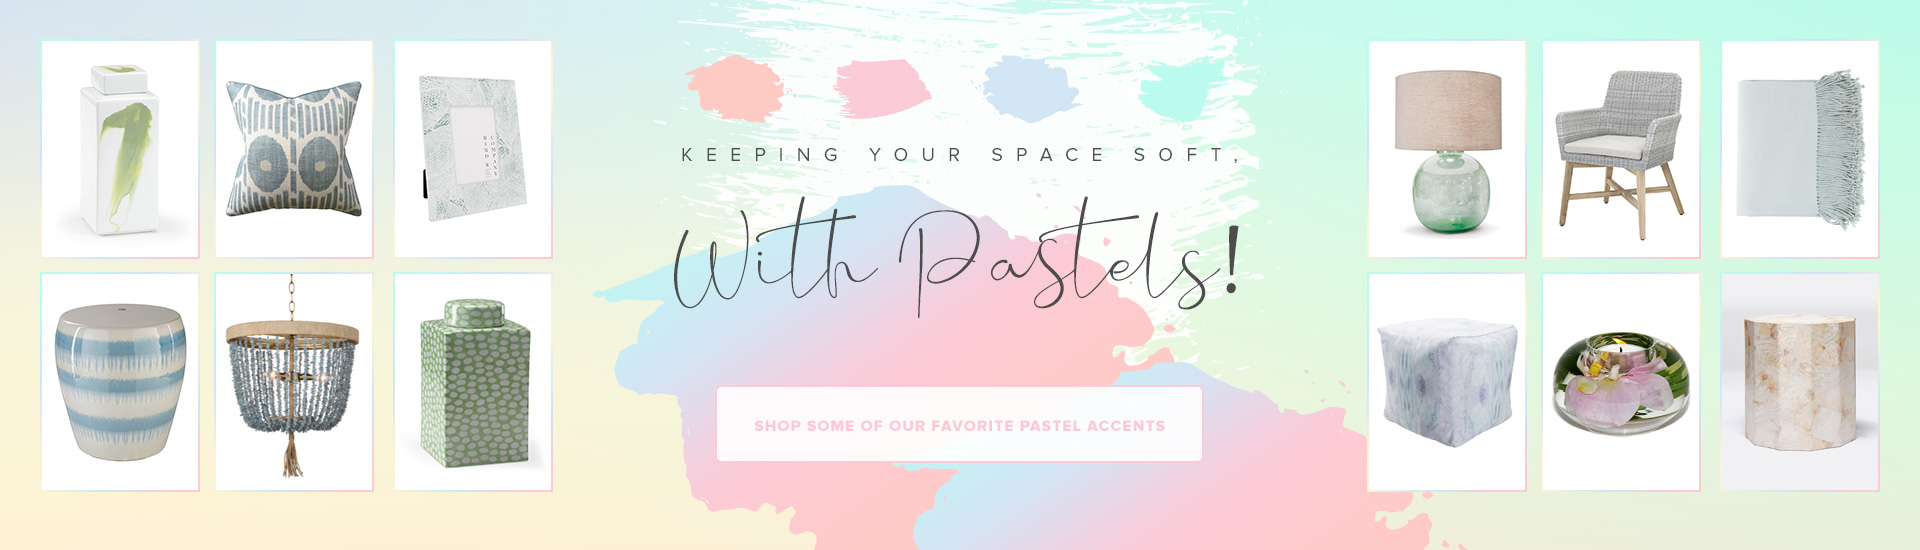 Decorate your space with Pastel colors at www.belleandjune.com